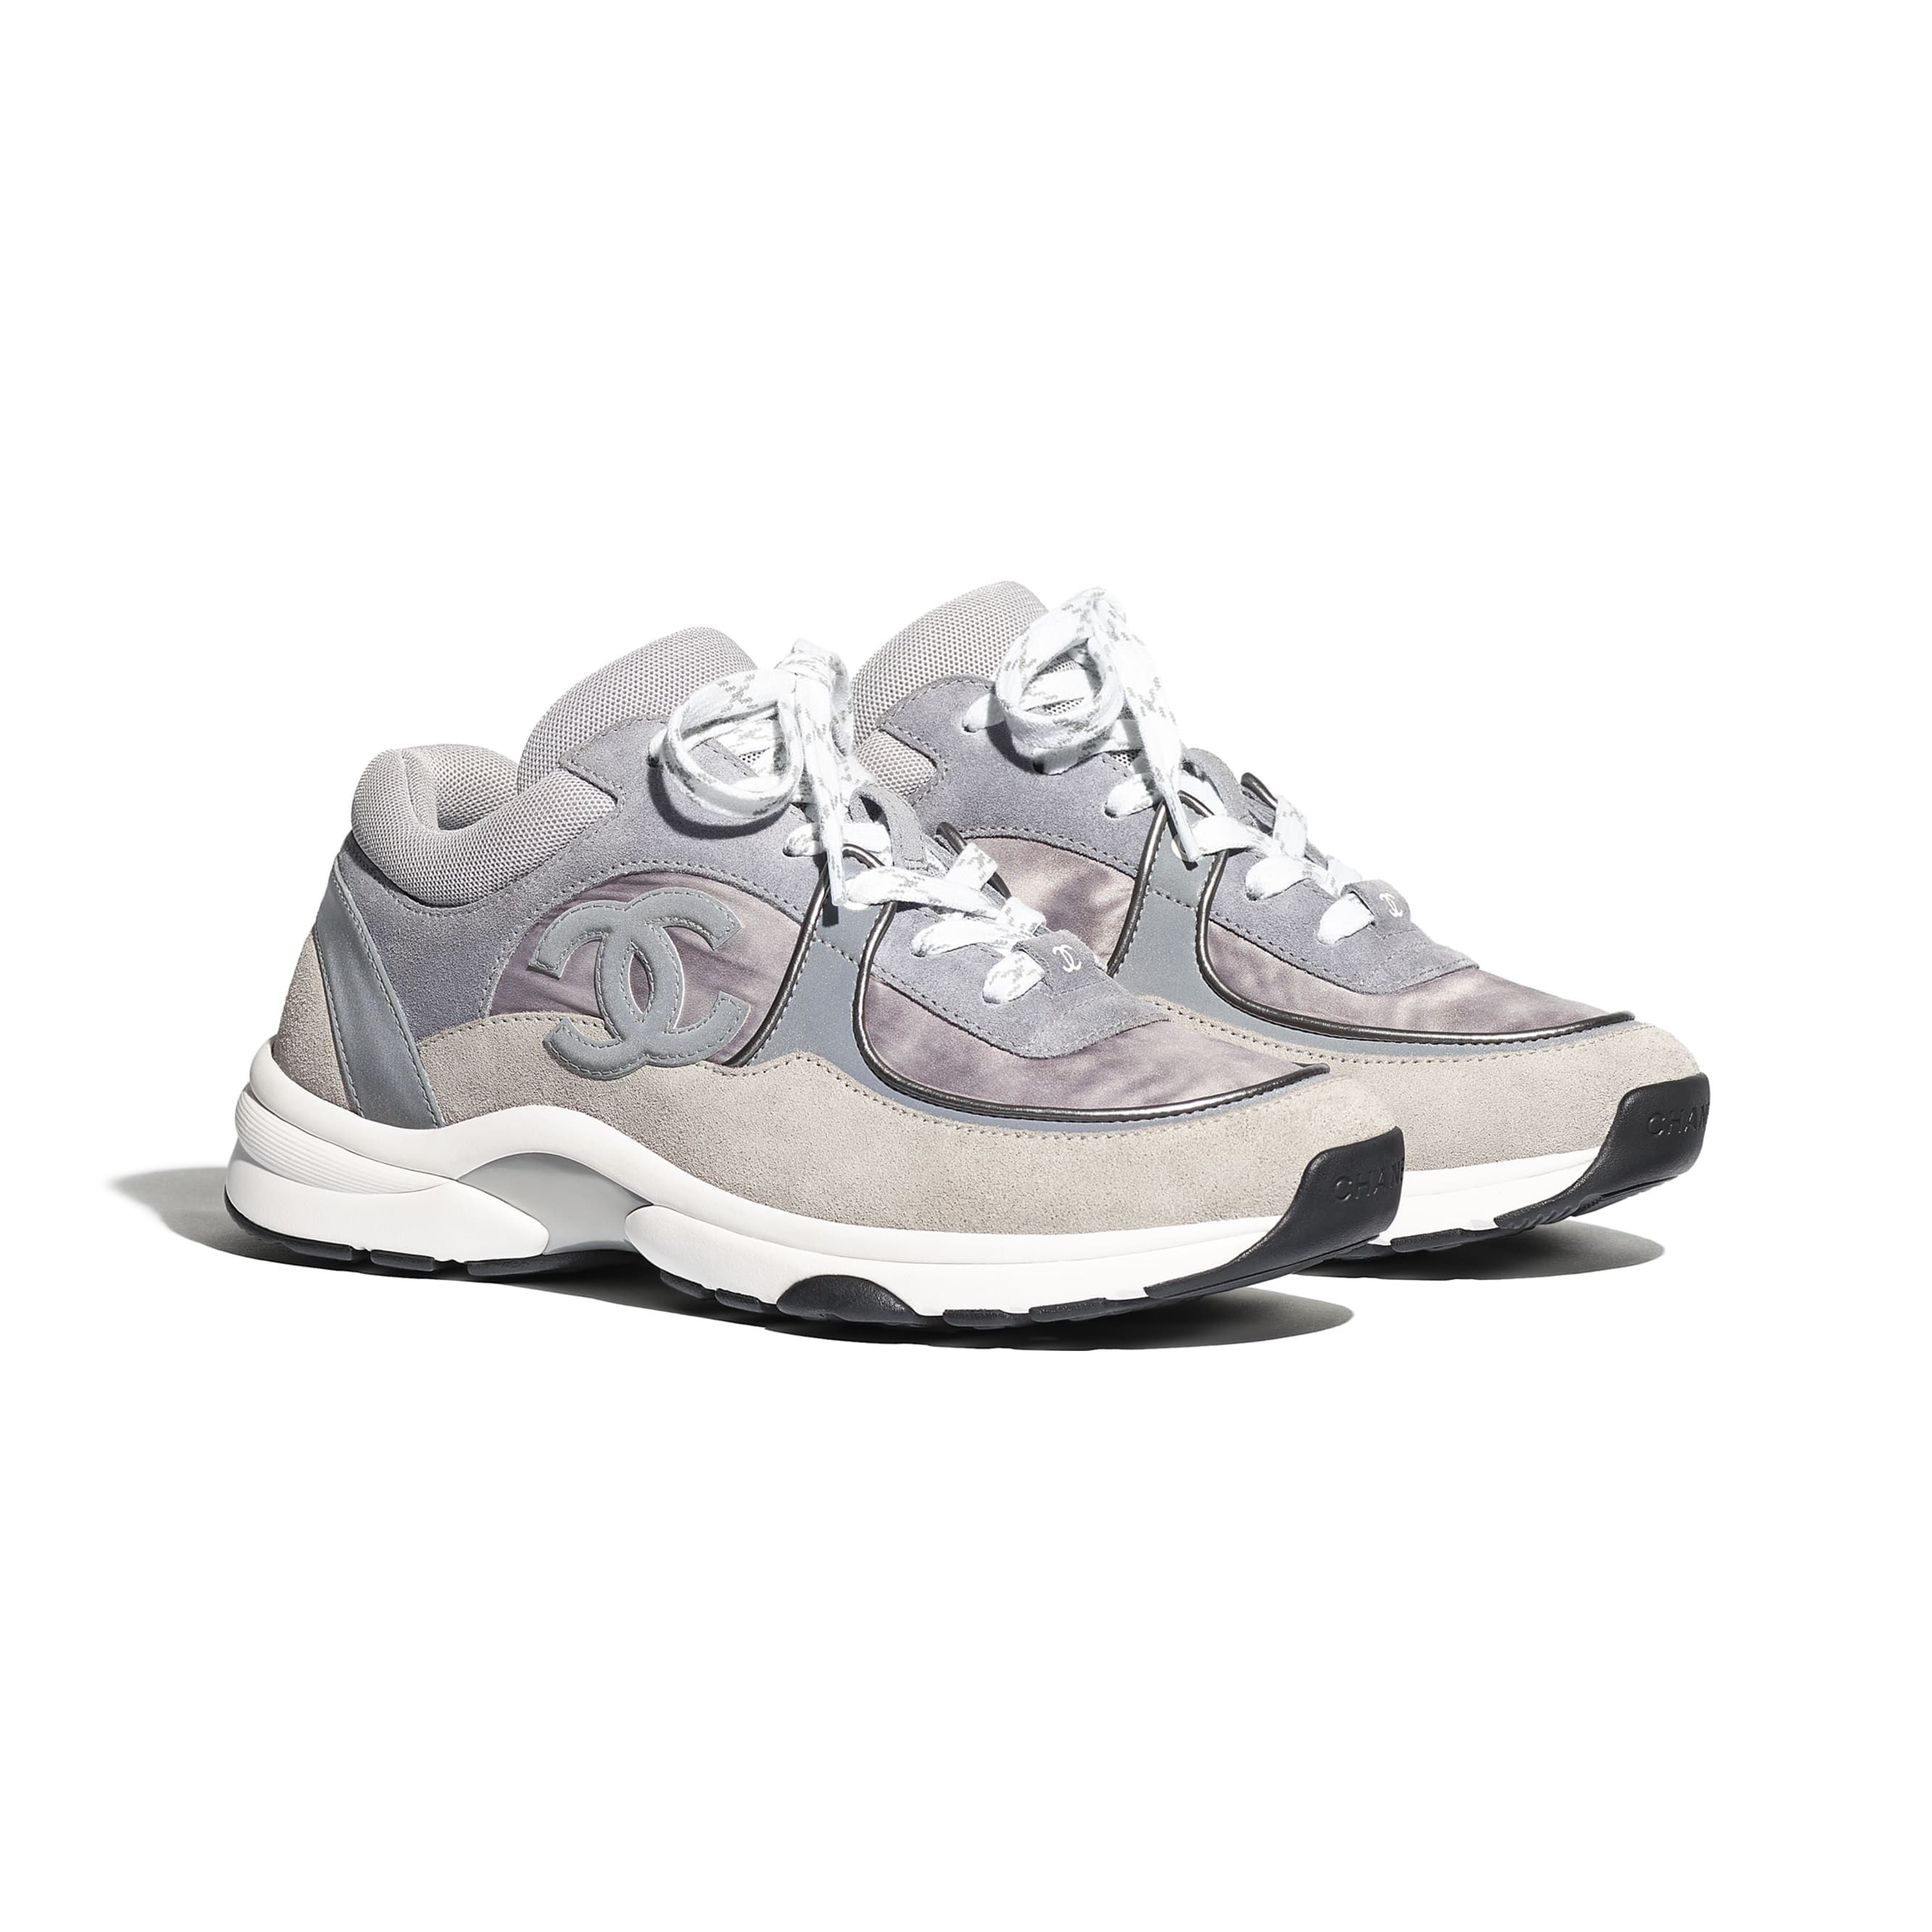 Grey sneakers, Chanel shoes, Sneakers